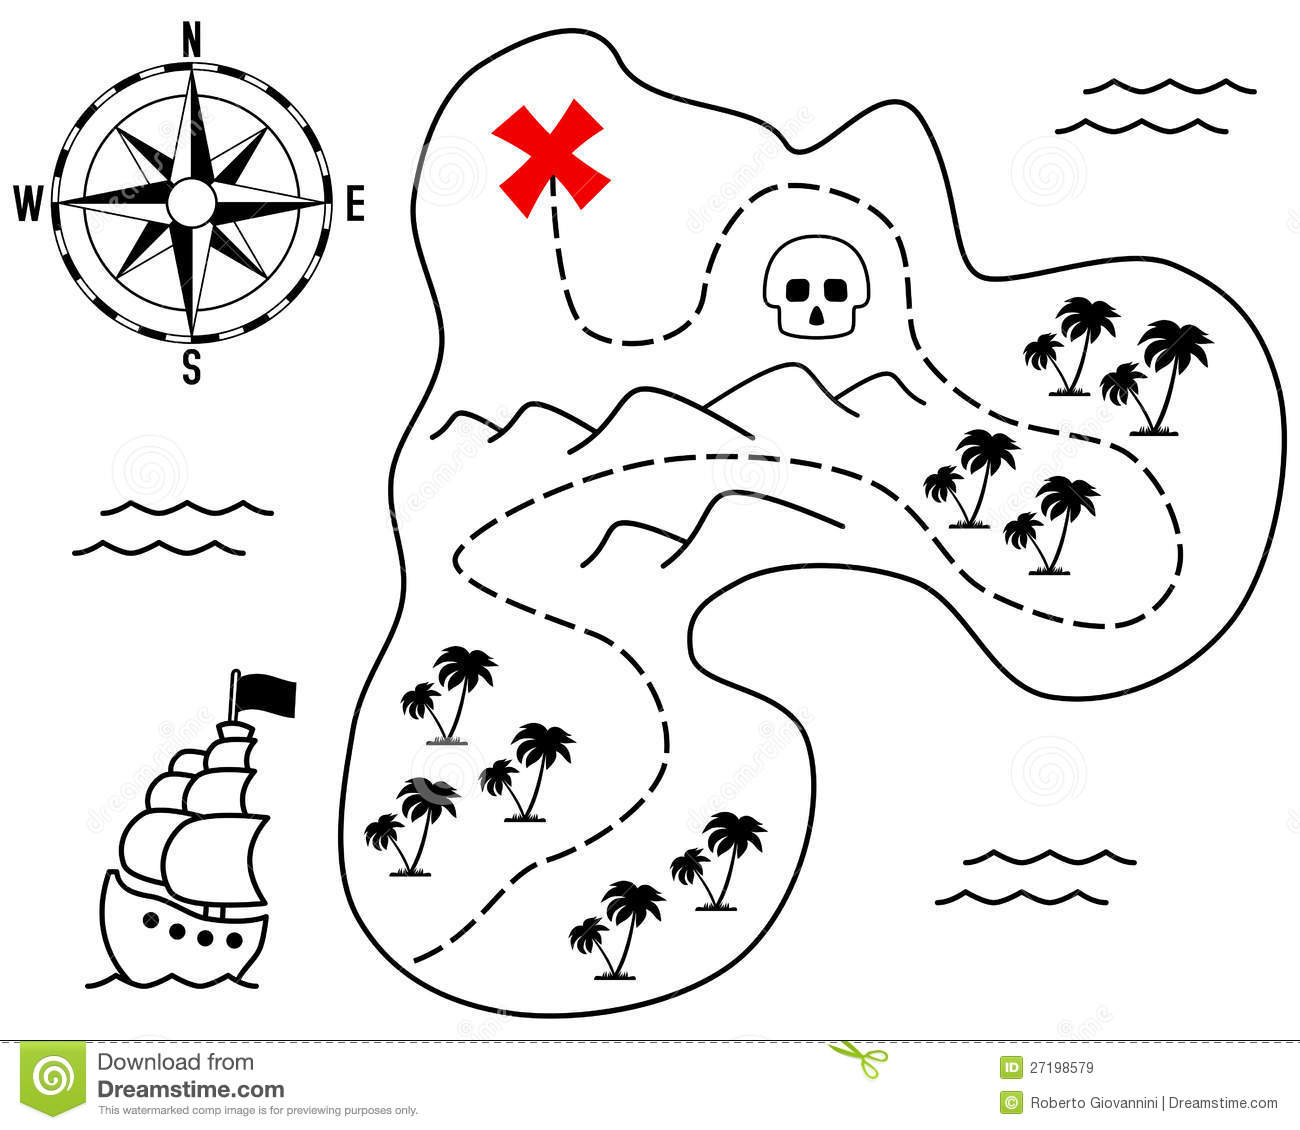 Royalty Free Stock Images Old Treasure Island Map Image27198579 likewise Stock Illustration Shopping Cart Line Art Sketch Eps Image46994953 besides AEW1c59Wcc2a057 additionally Royalty Free Stock Images Woman Engaged Fitness Vector Illustration File Eps Format Image38551089 moreover Stock Illustration Door Handle Line Art Sketch Eps Image46967449. on us map vector eps